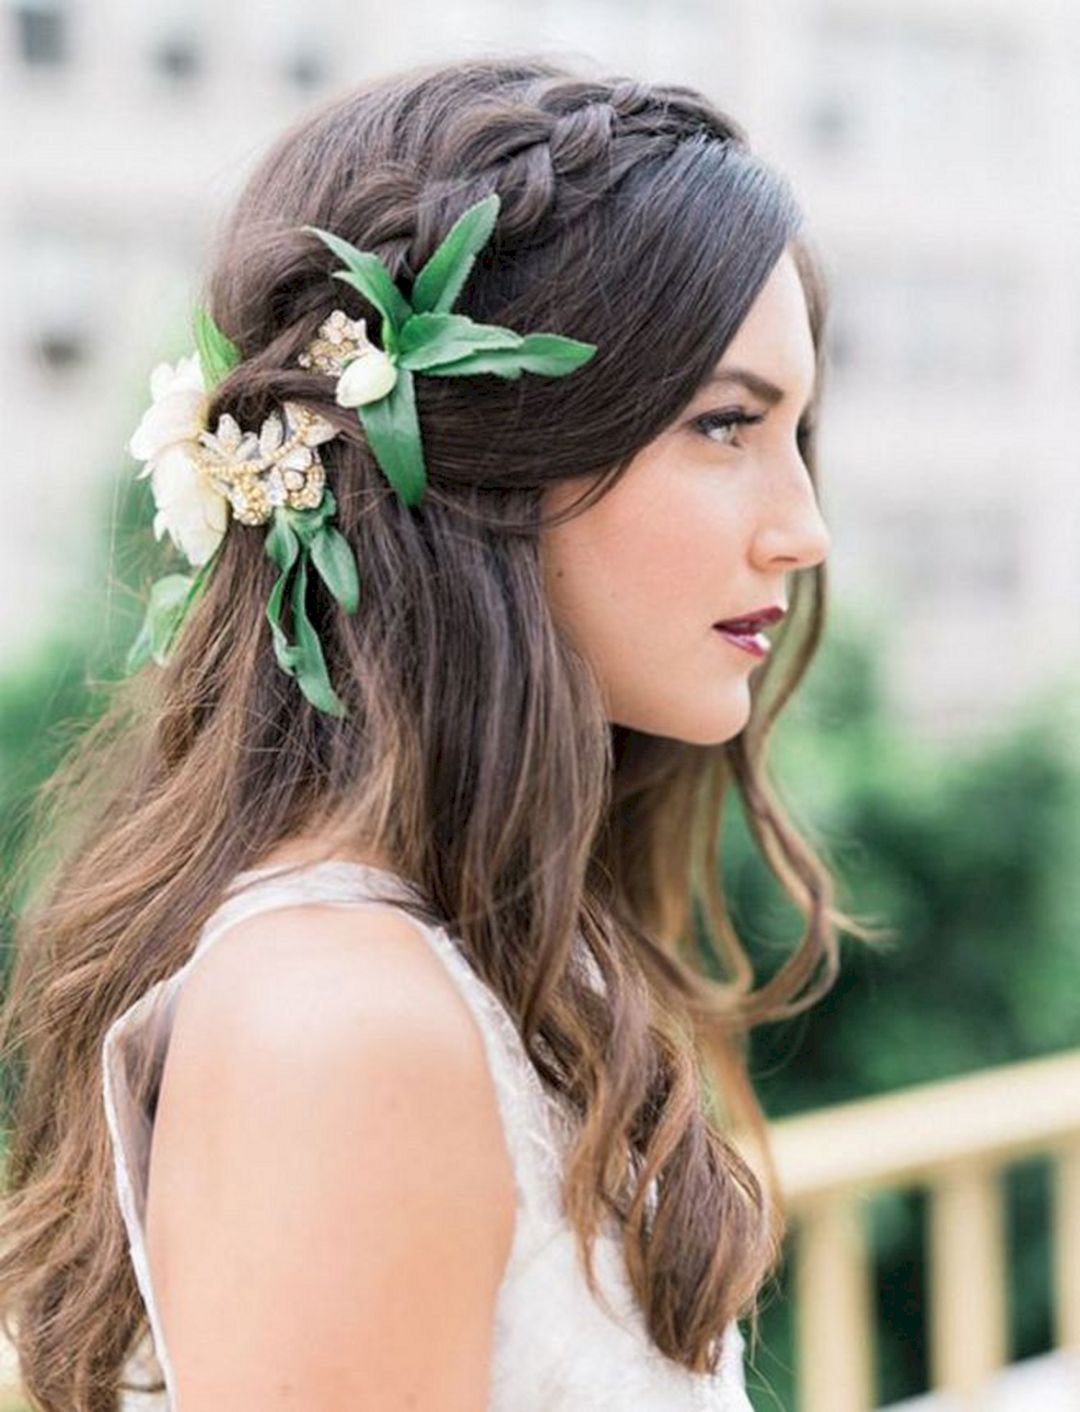 15 Beautiful And Adorable Half Up Half Down Wedding Hairstyles Ideas Braided Hairstyles For Wedding Wedding Hair Flowers Wedding Hair Half